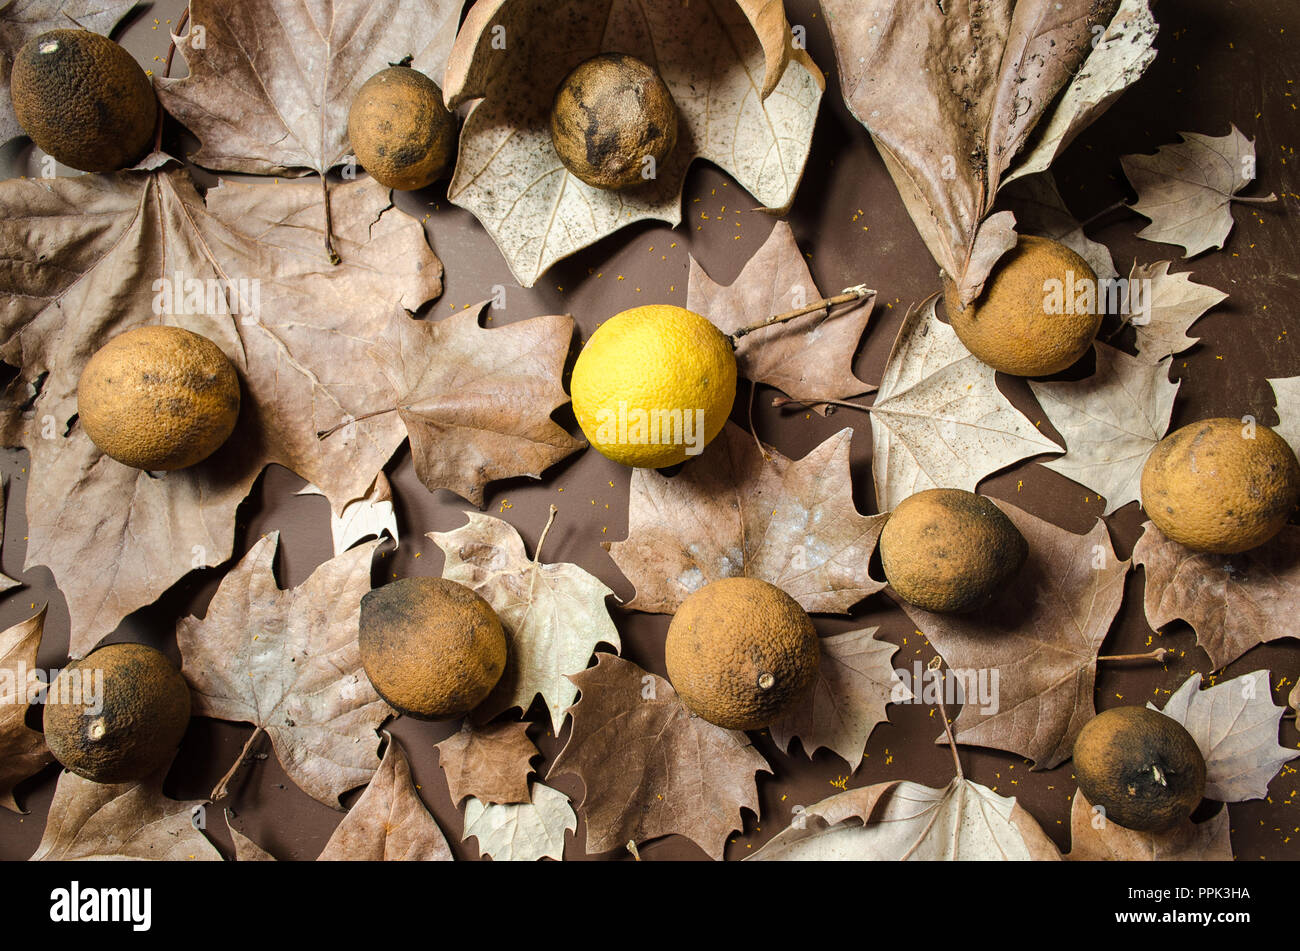 Dried Lemons Stock Photos Dried Lemons Stock Images Alamy